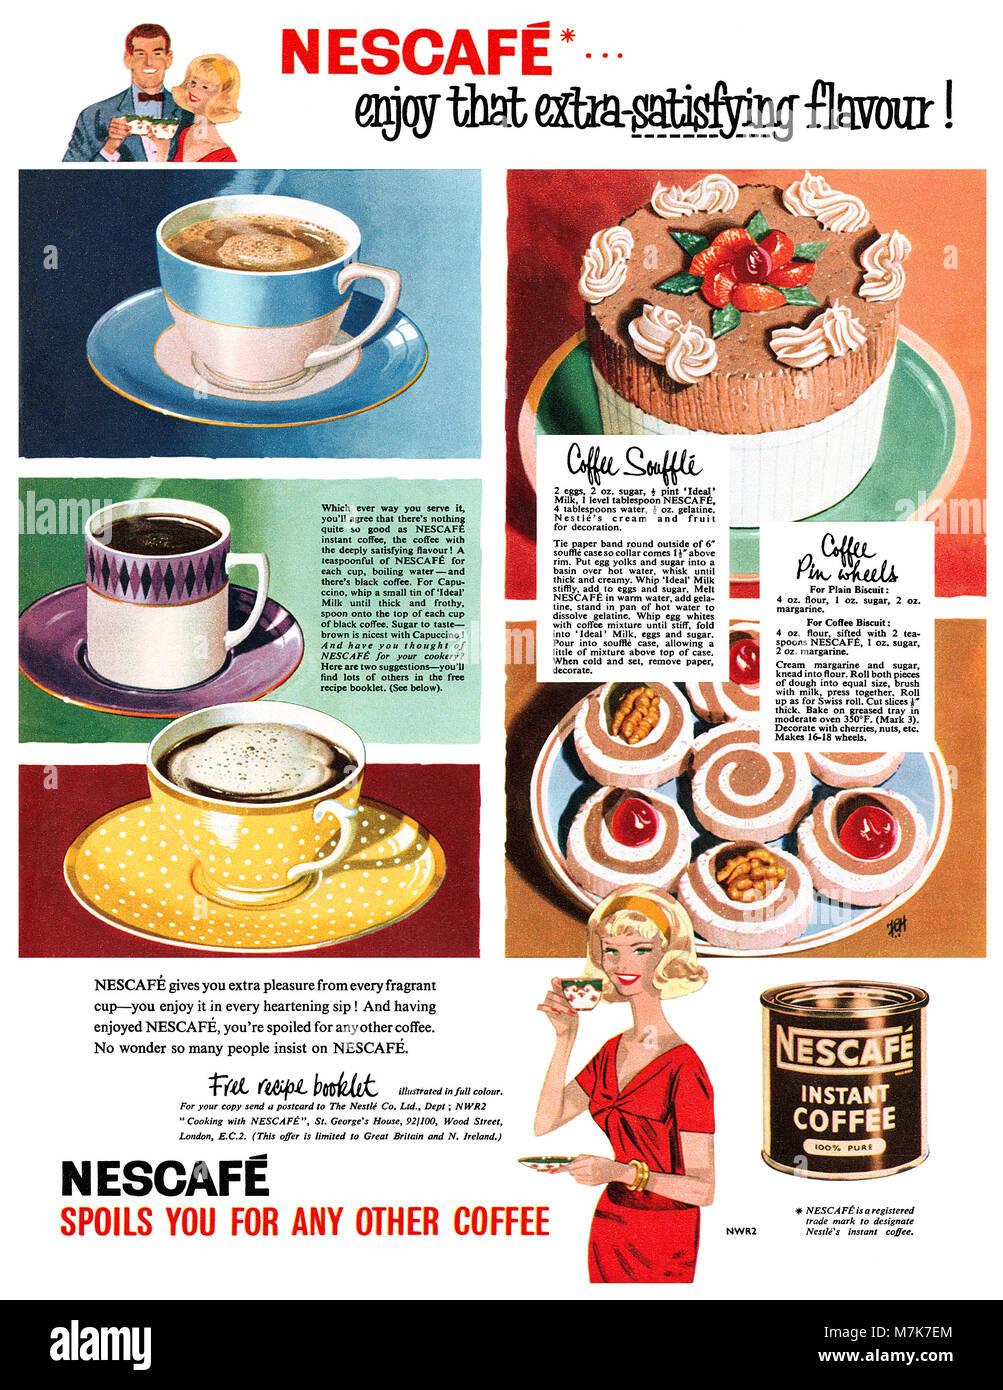 Nescafe Advert Stock Photos & Nescafe Advert Stock Images - Alamy